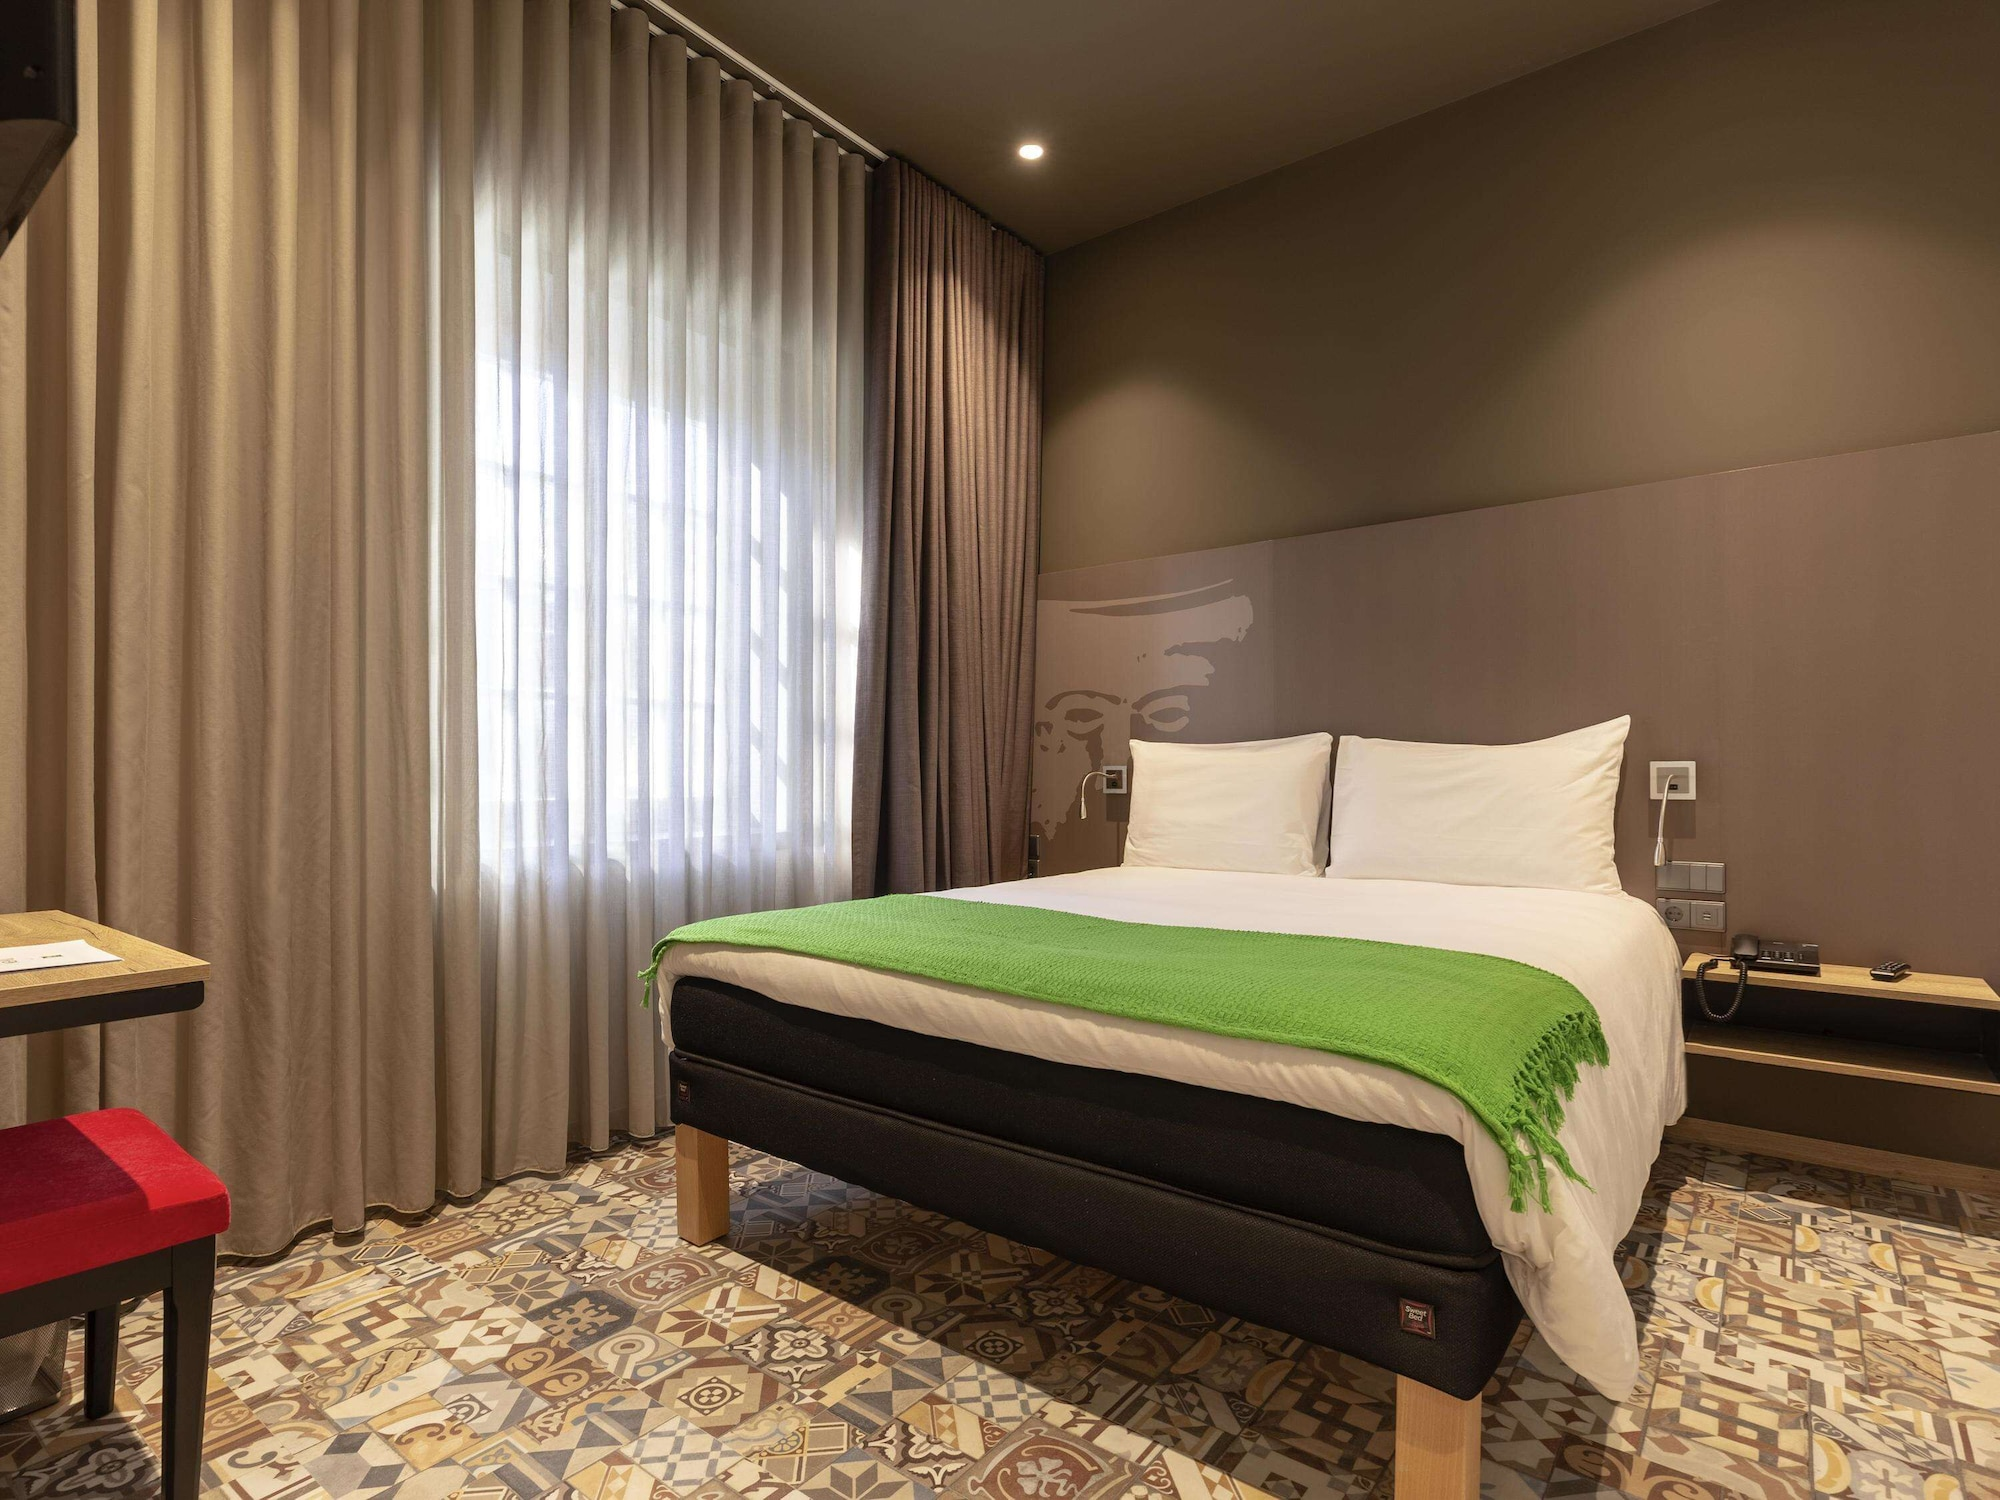 ibis Styles chaves, Chaves